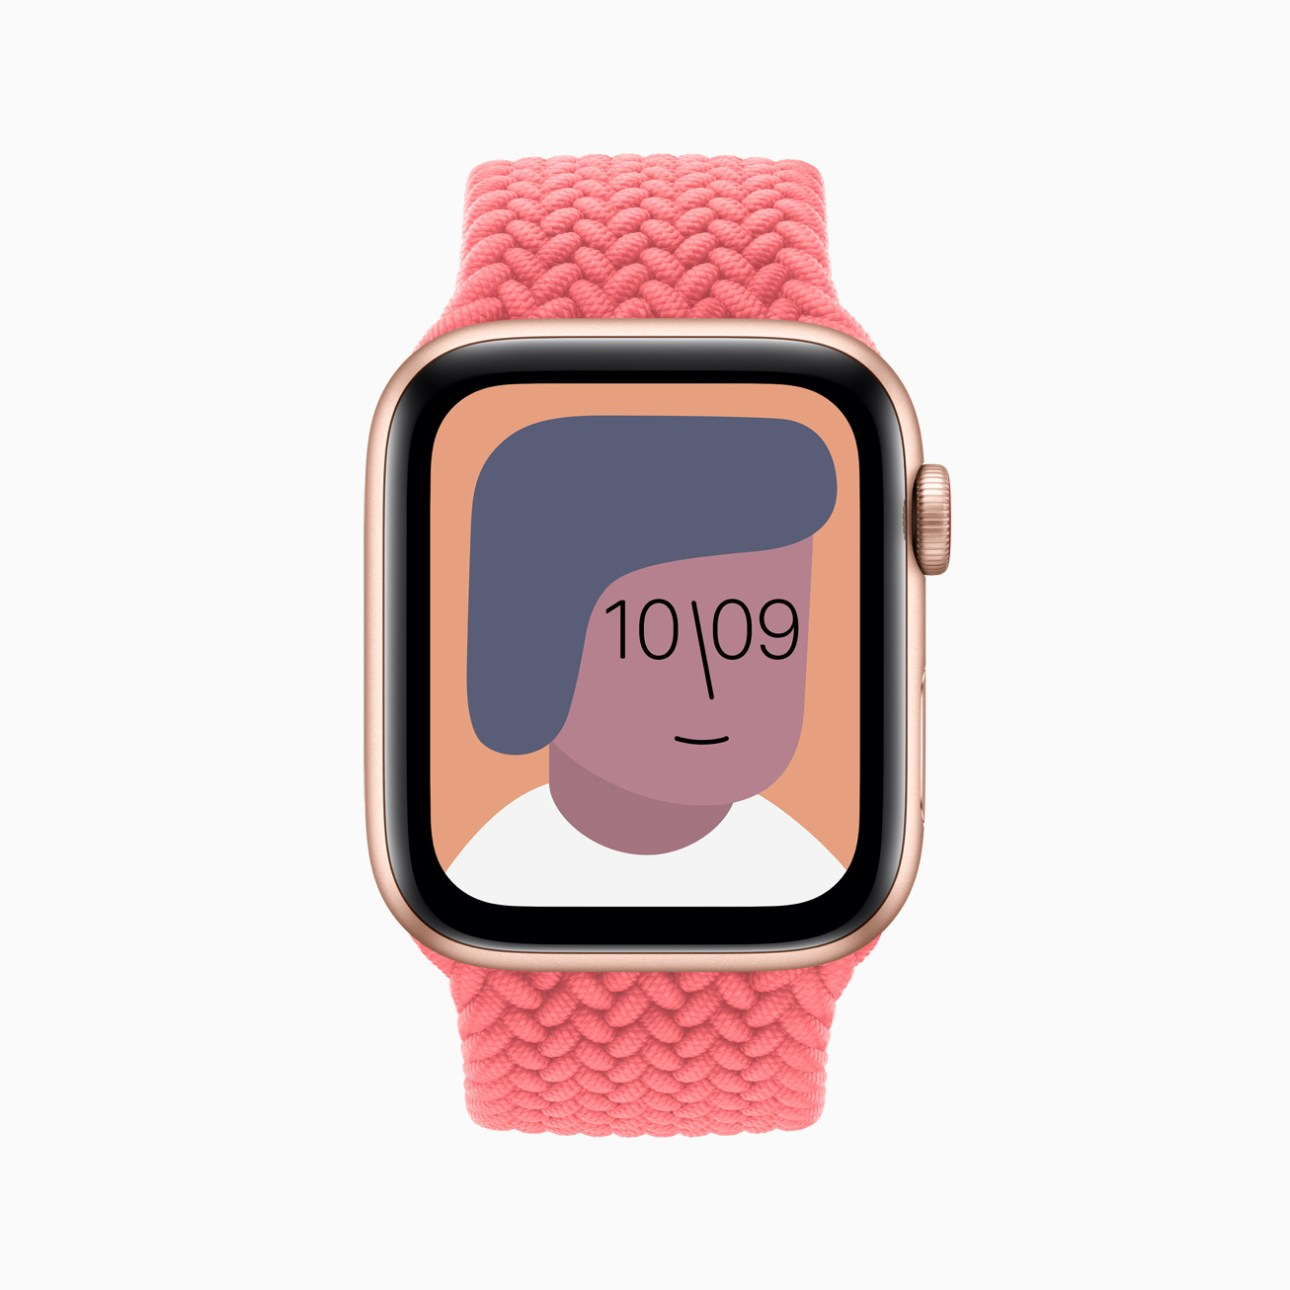 Apple Announced Apple Watch SE with Modern Design at Affordable Price